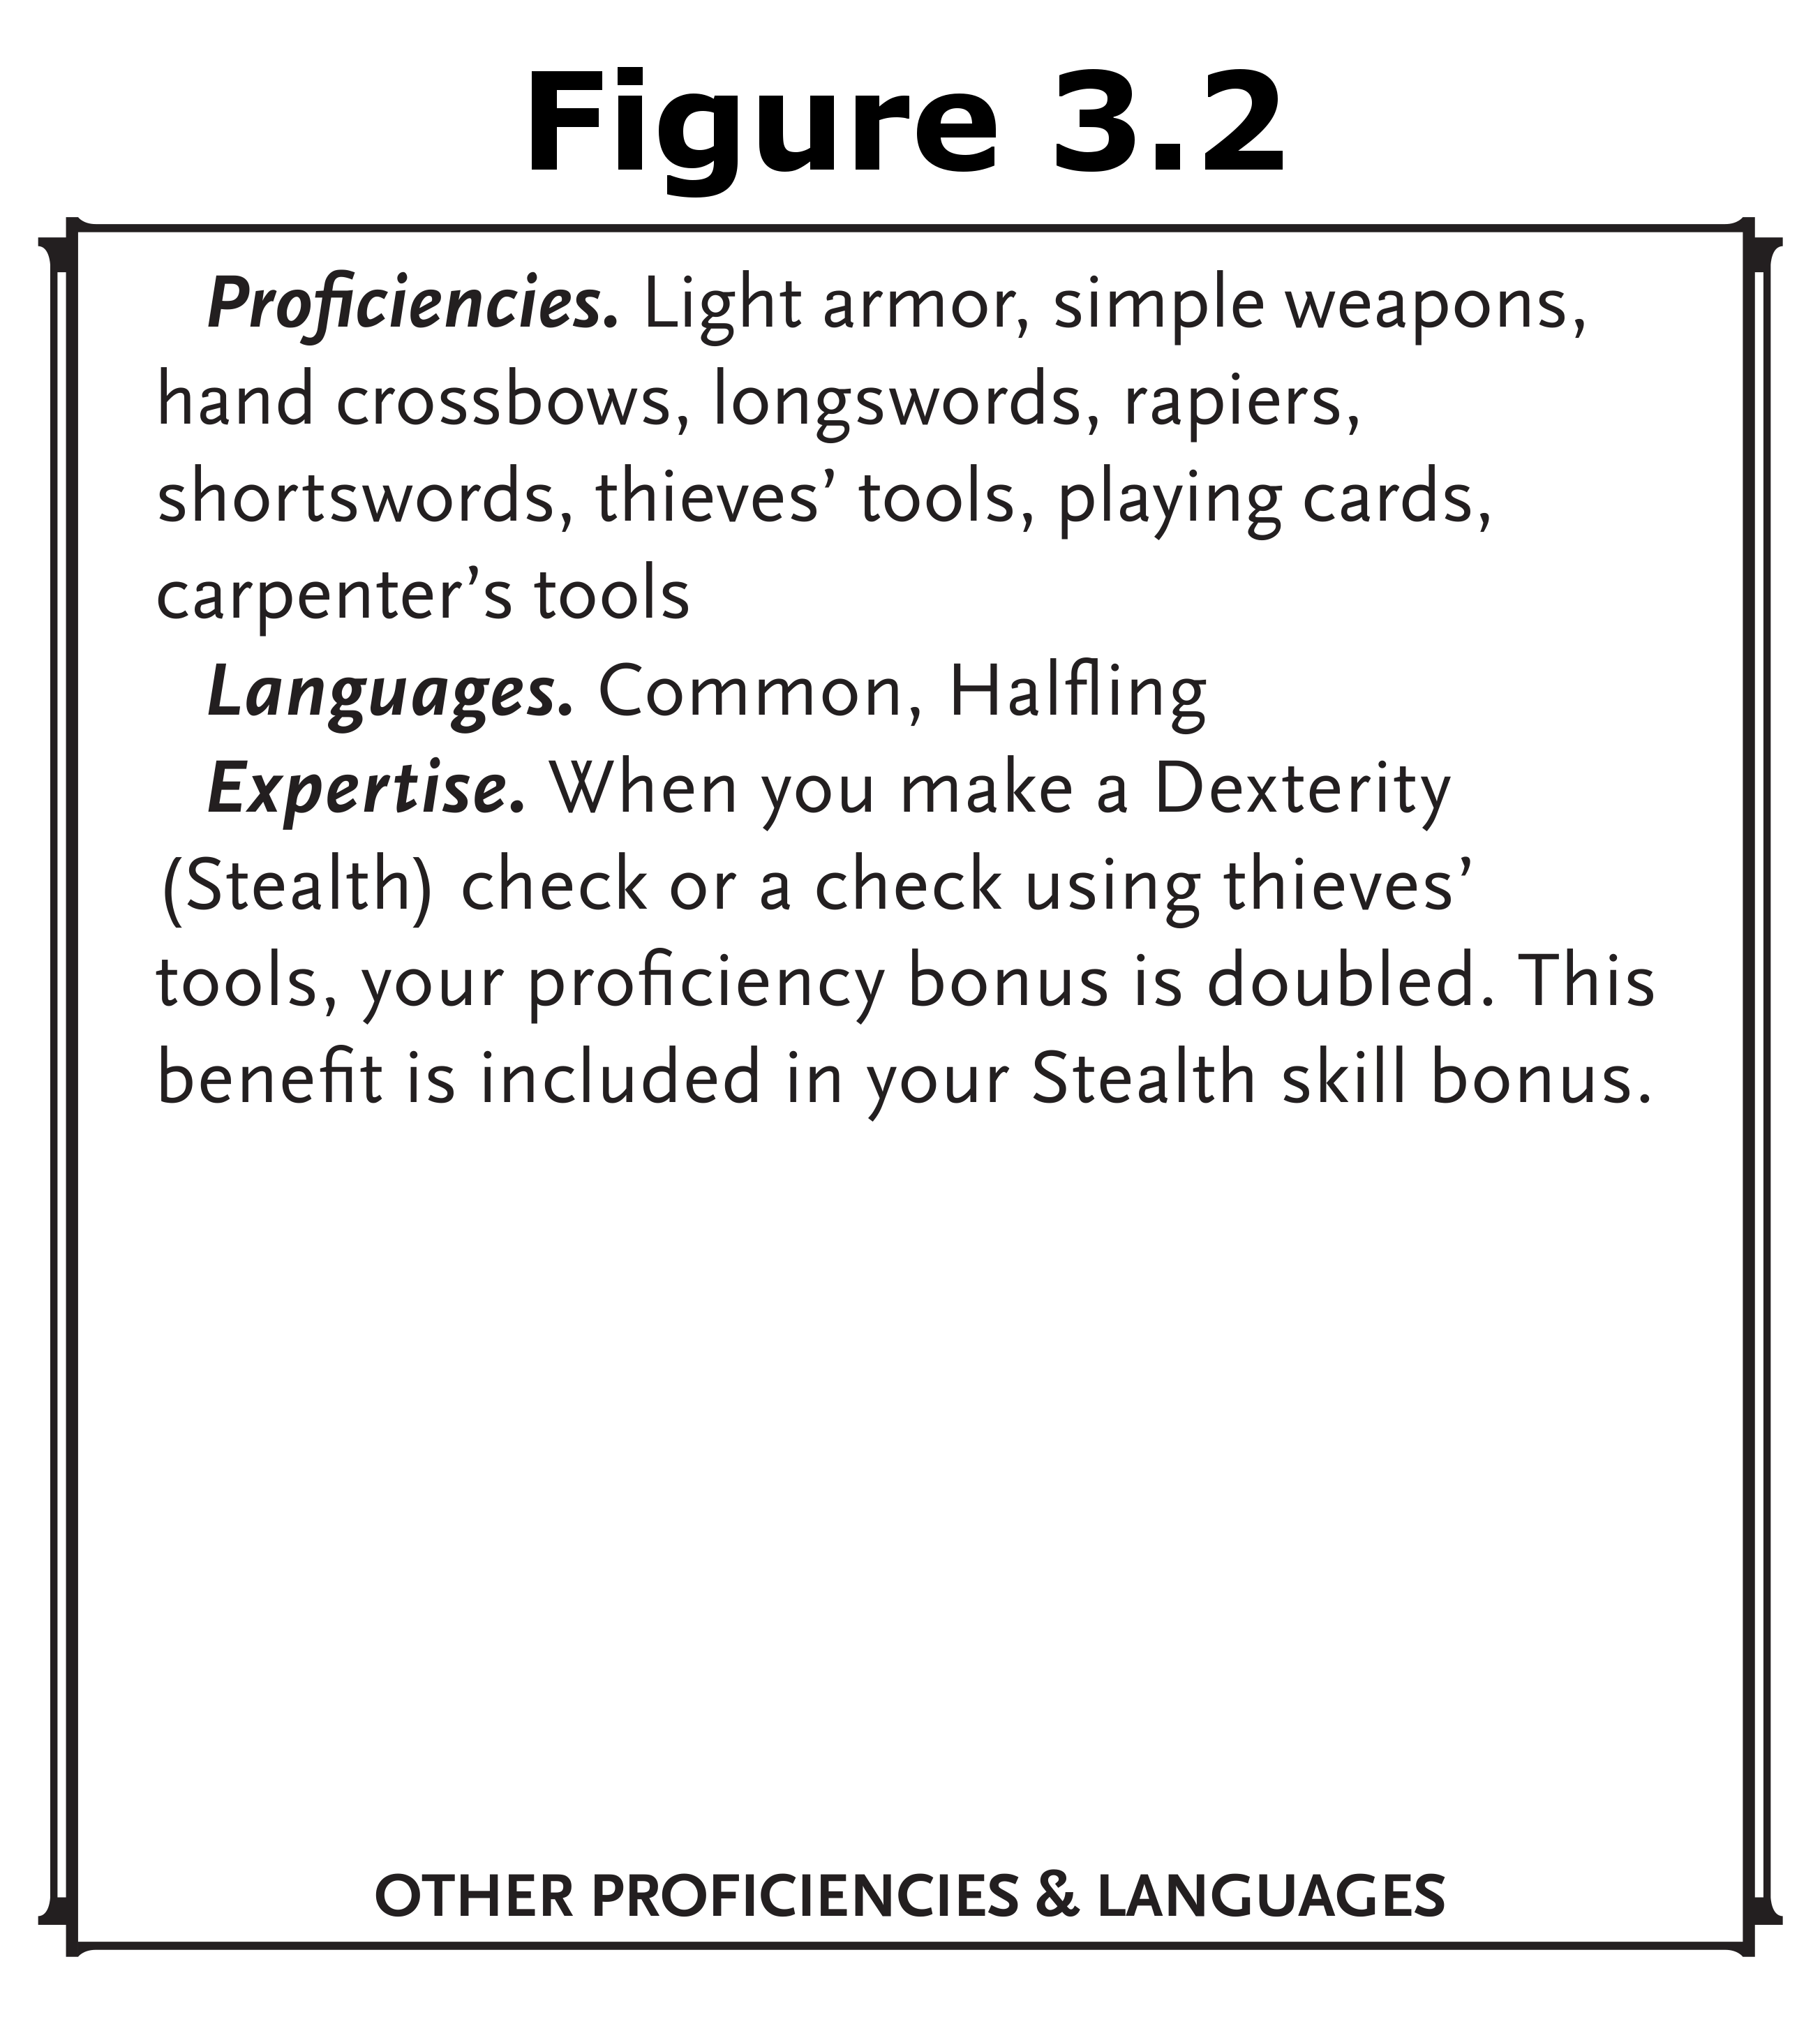 Picture of Proficiencies and Languages